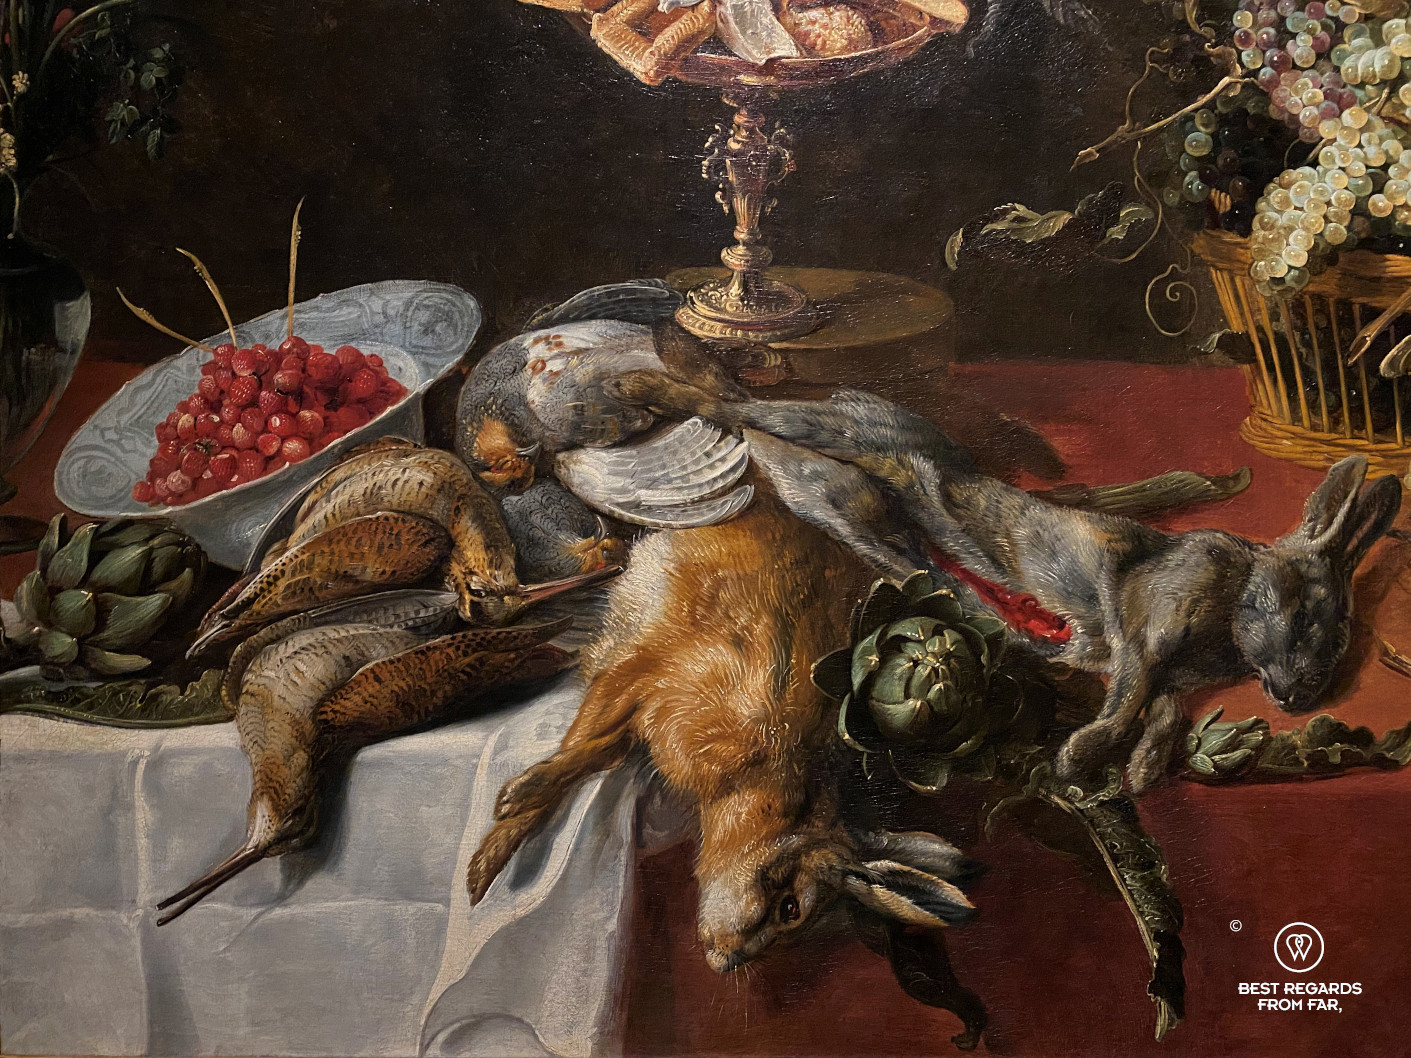 Still life (1620's) by Frans Snijders, Snijders Rockoxhuis, Antwerp, showing game and fruits